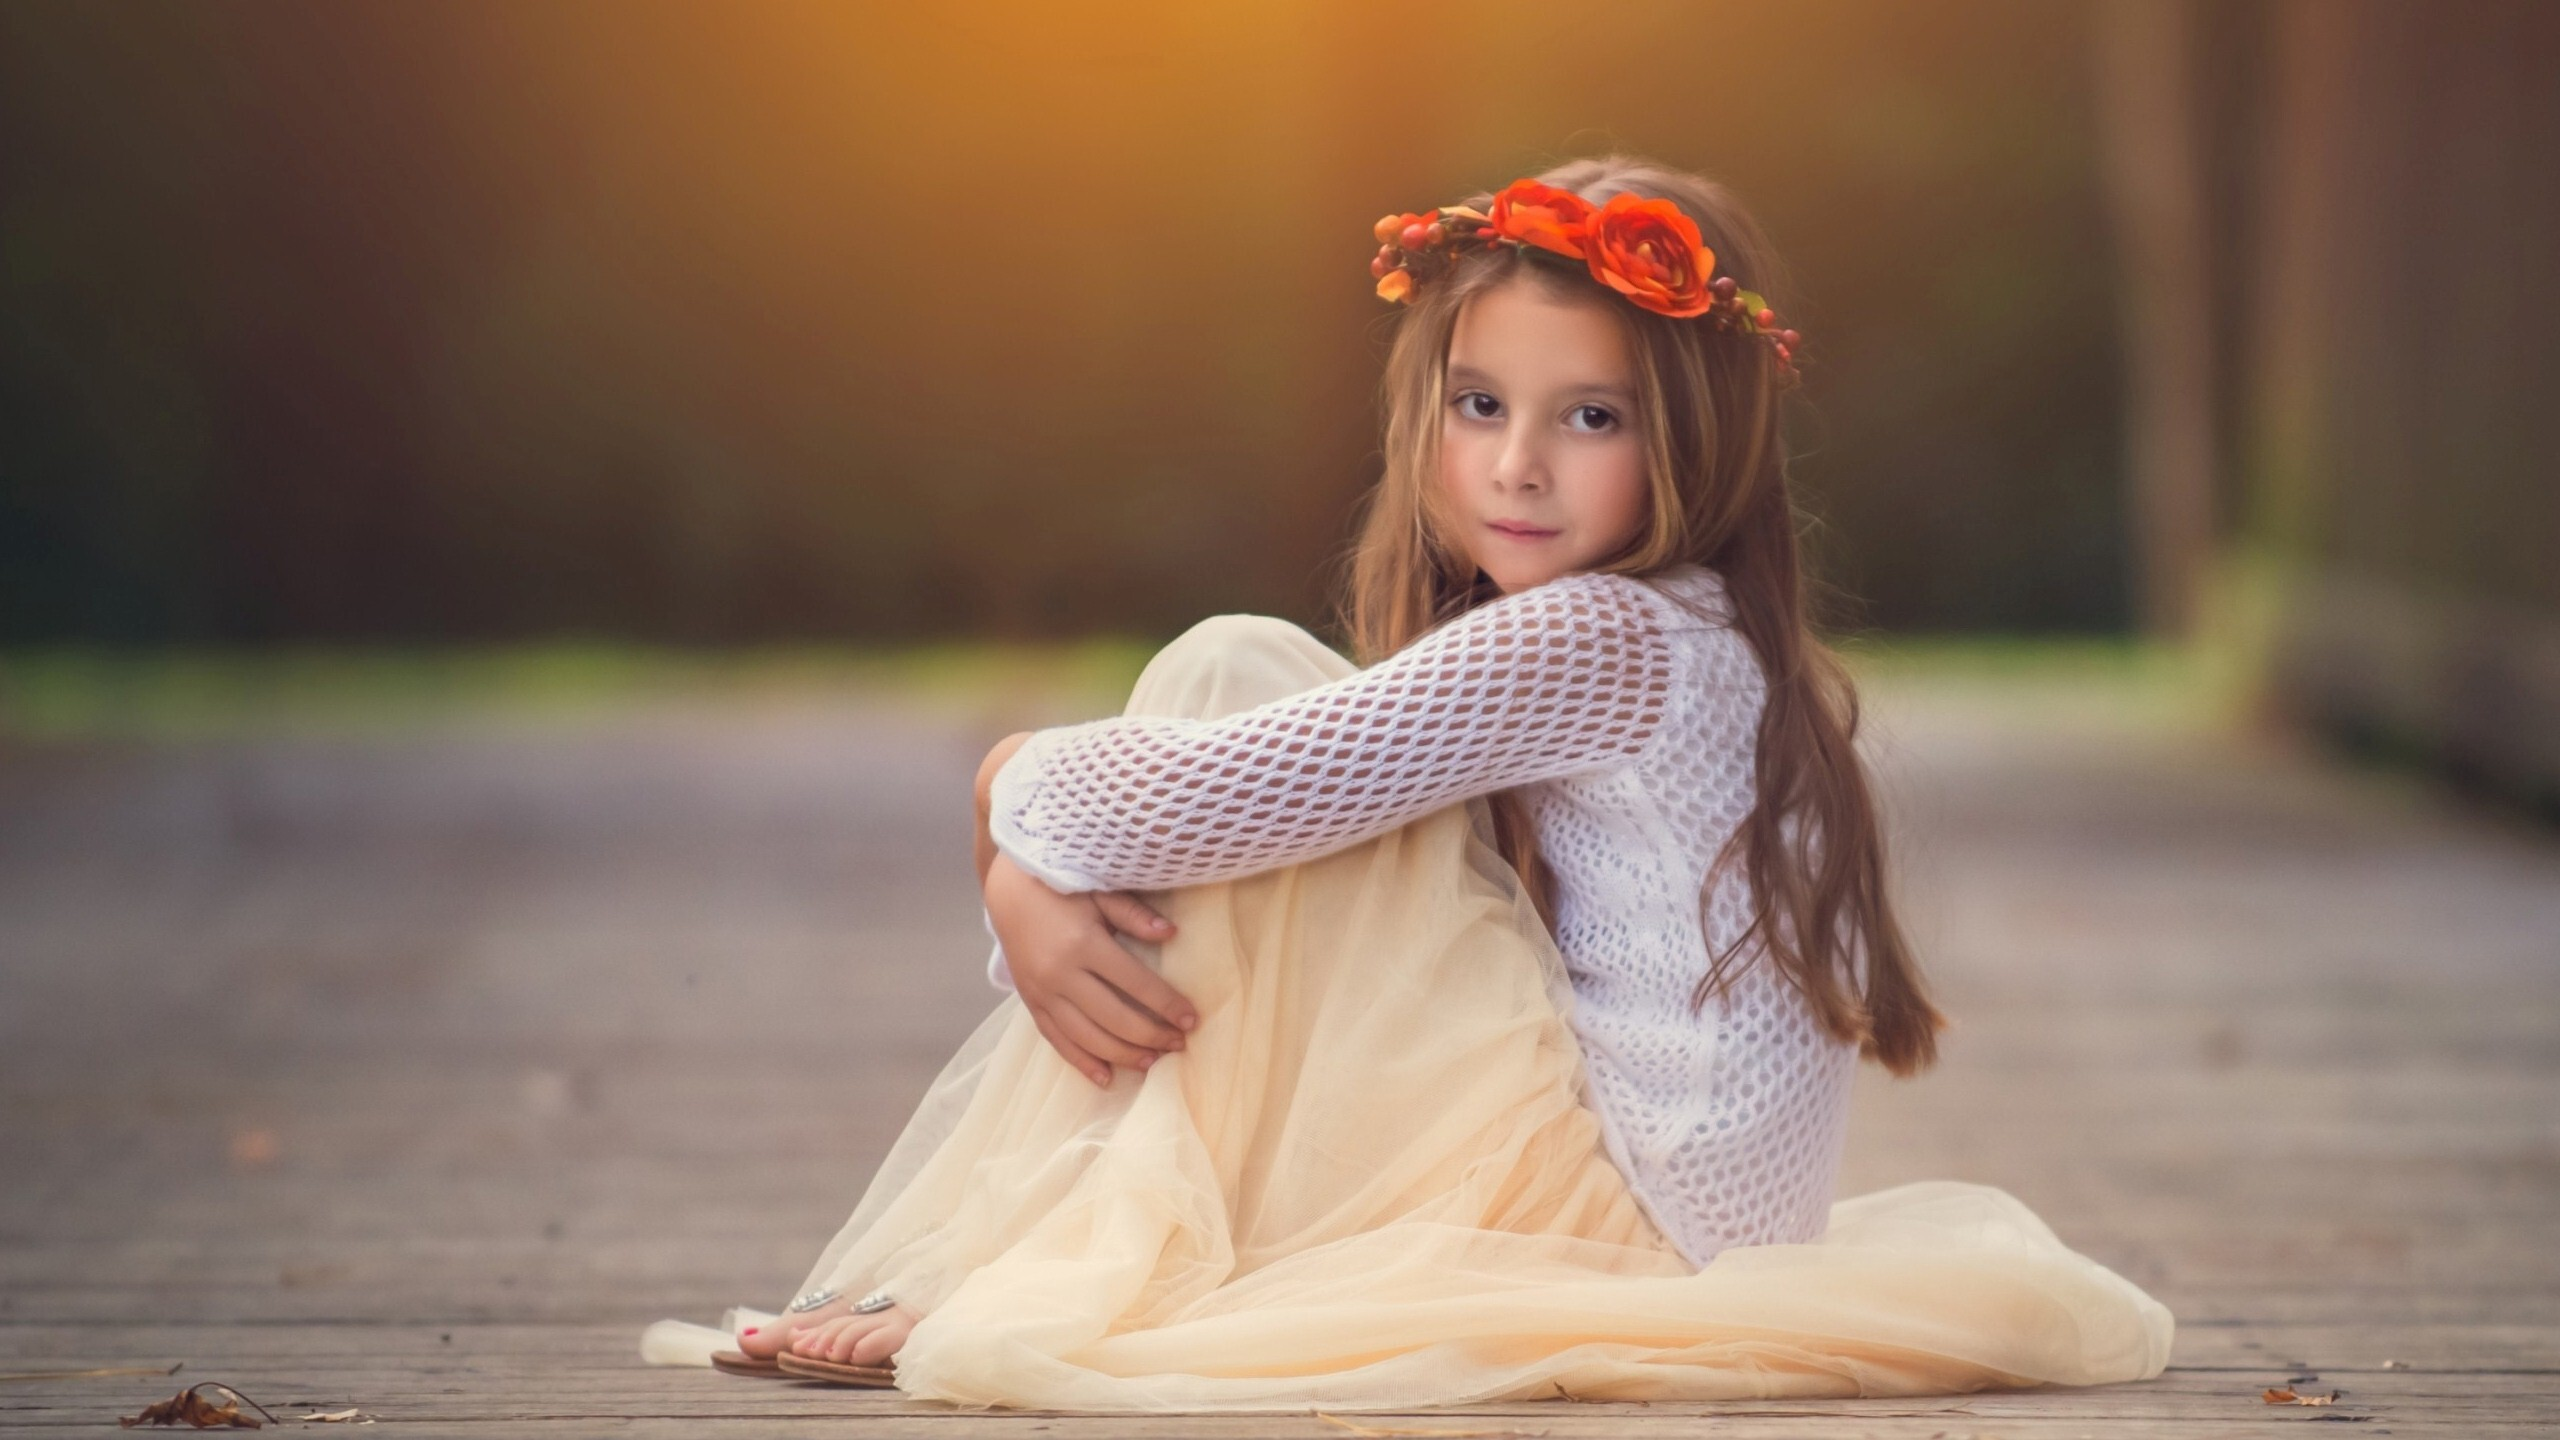 sweet baby girl in gorgeous dress | hd wallpapers